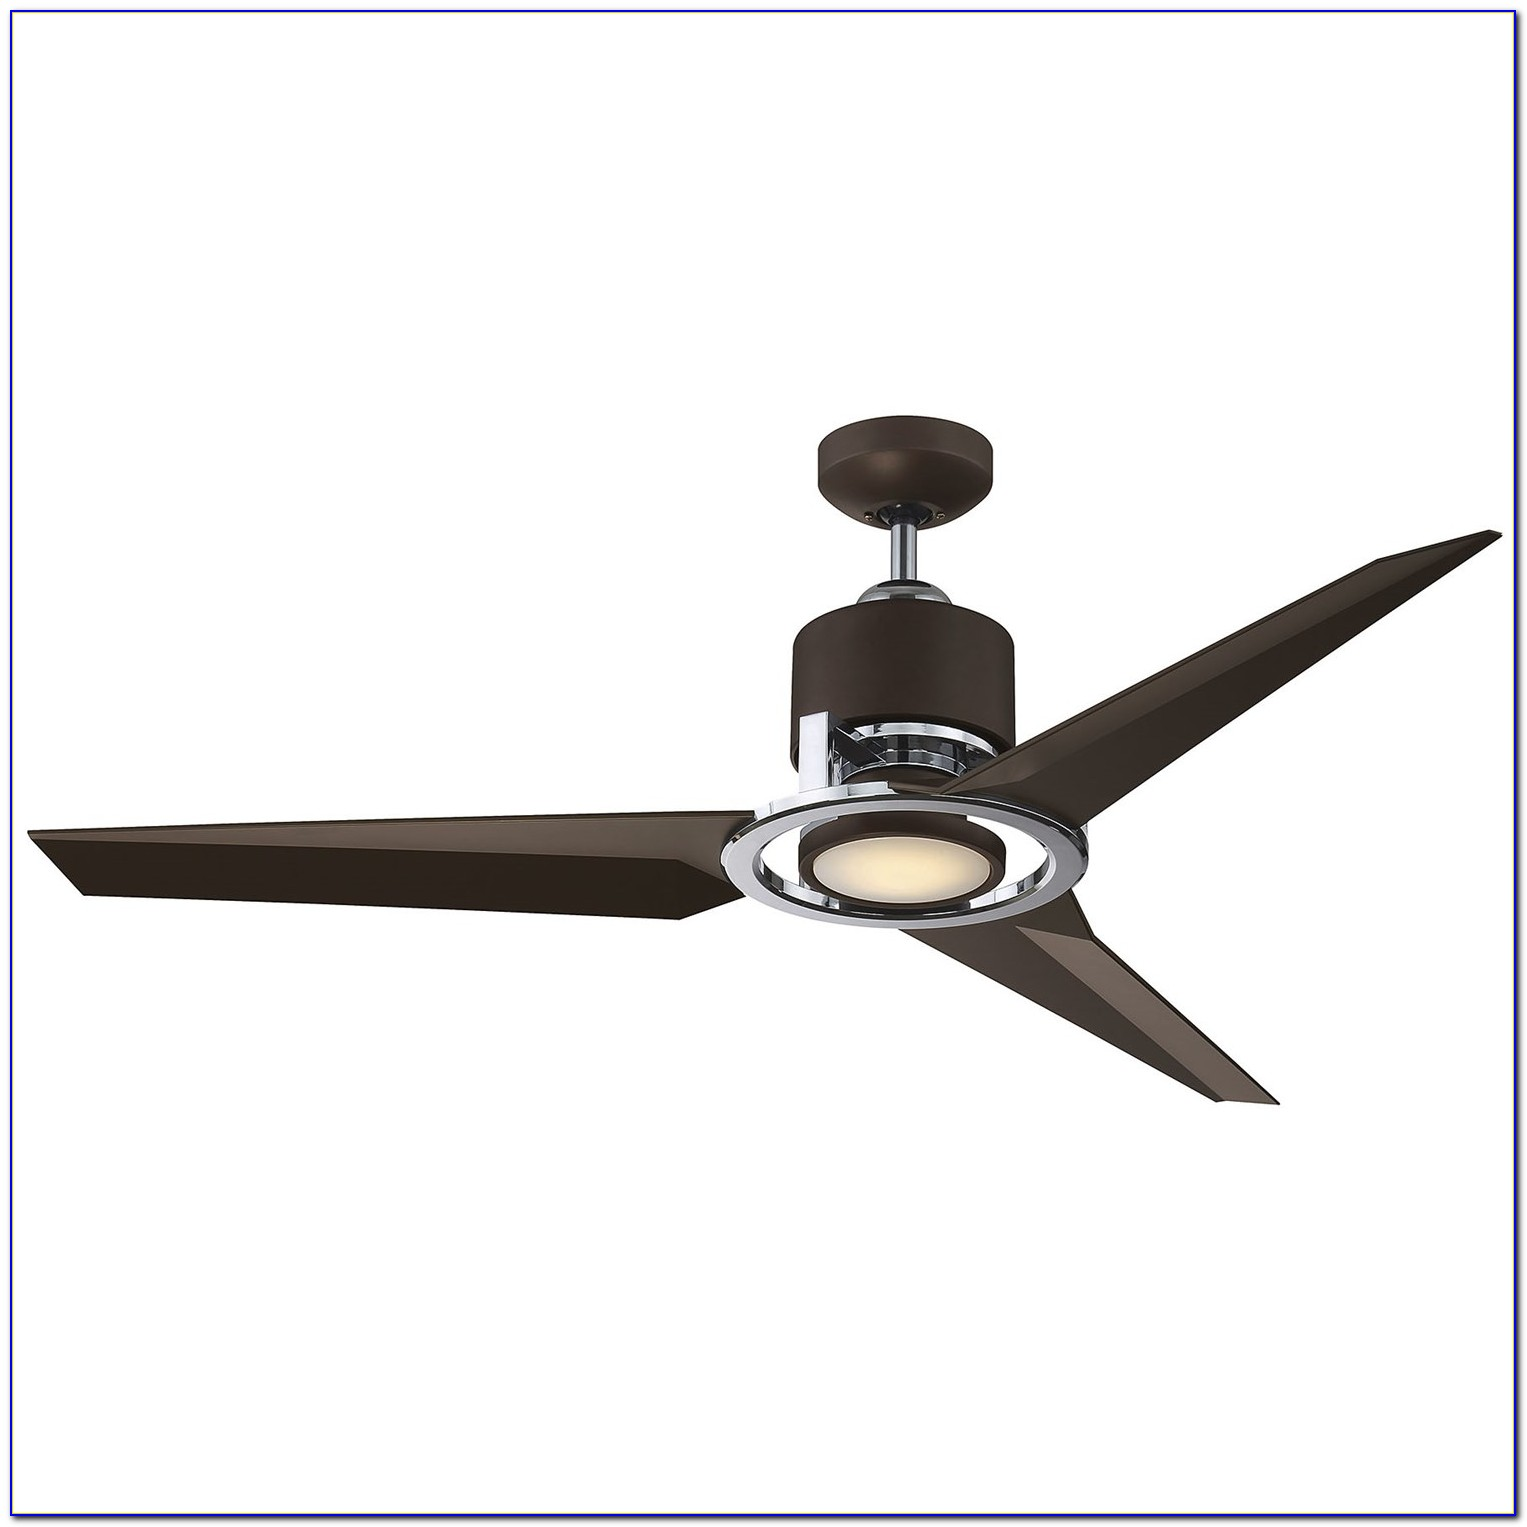 3 Blade Ceiling Fan With Light And Remote